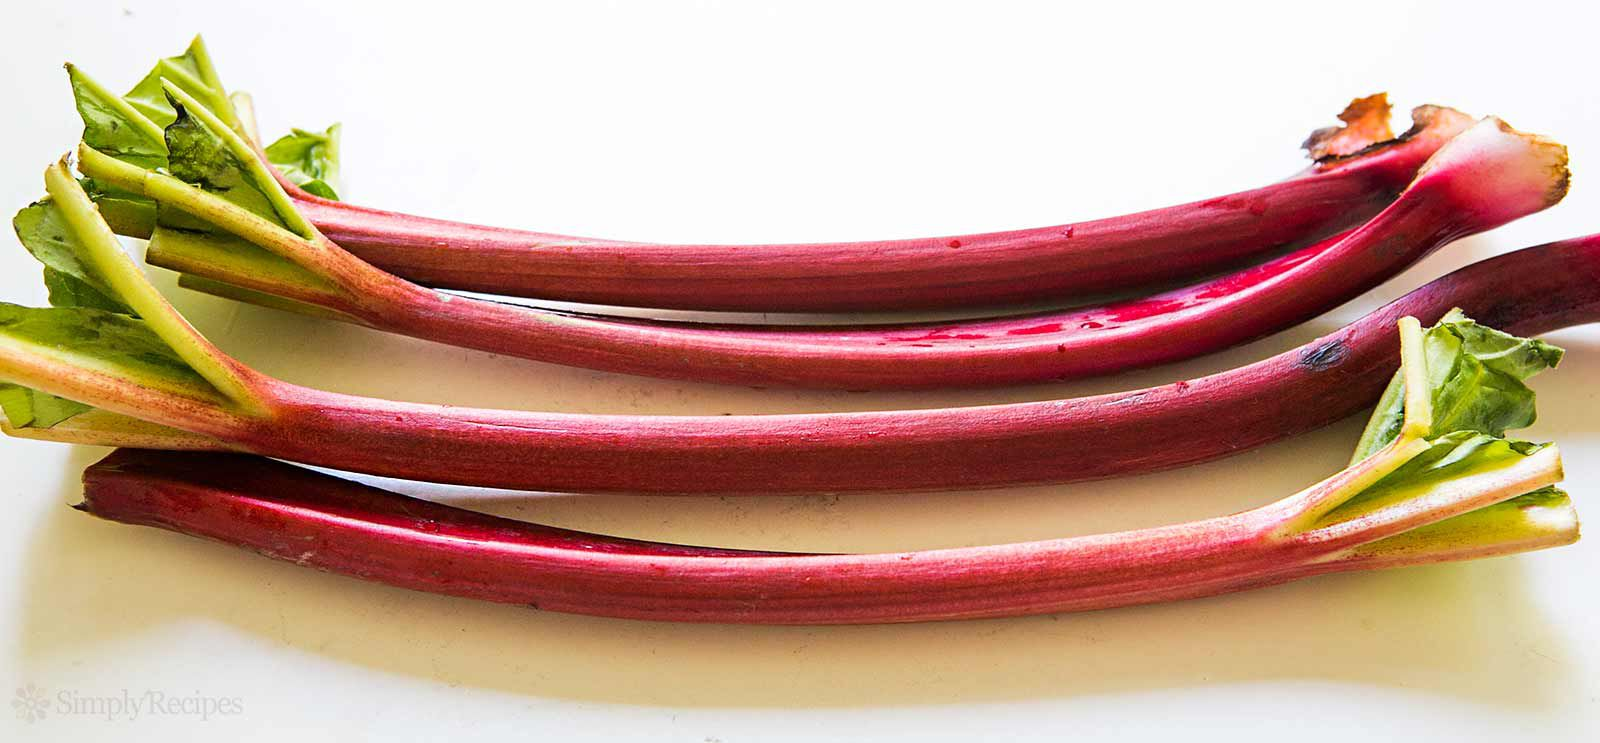 raw rhubarb for strawberry rhubarb pie, don't use the leaves, they're toxic!